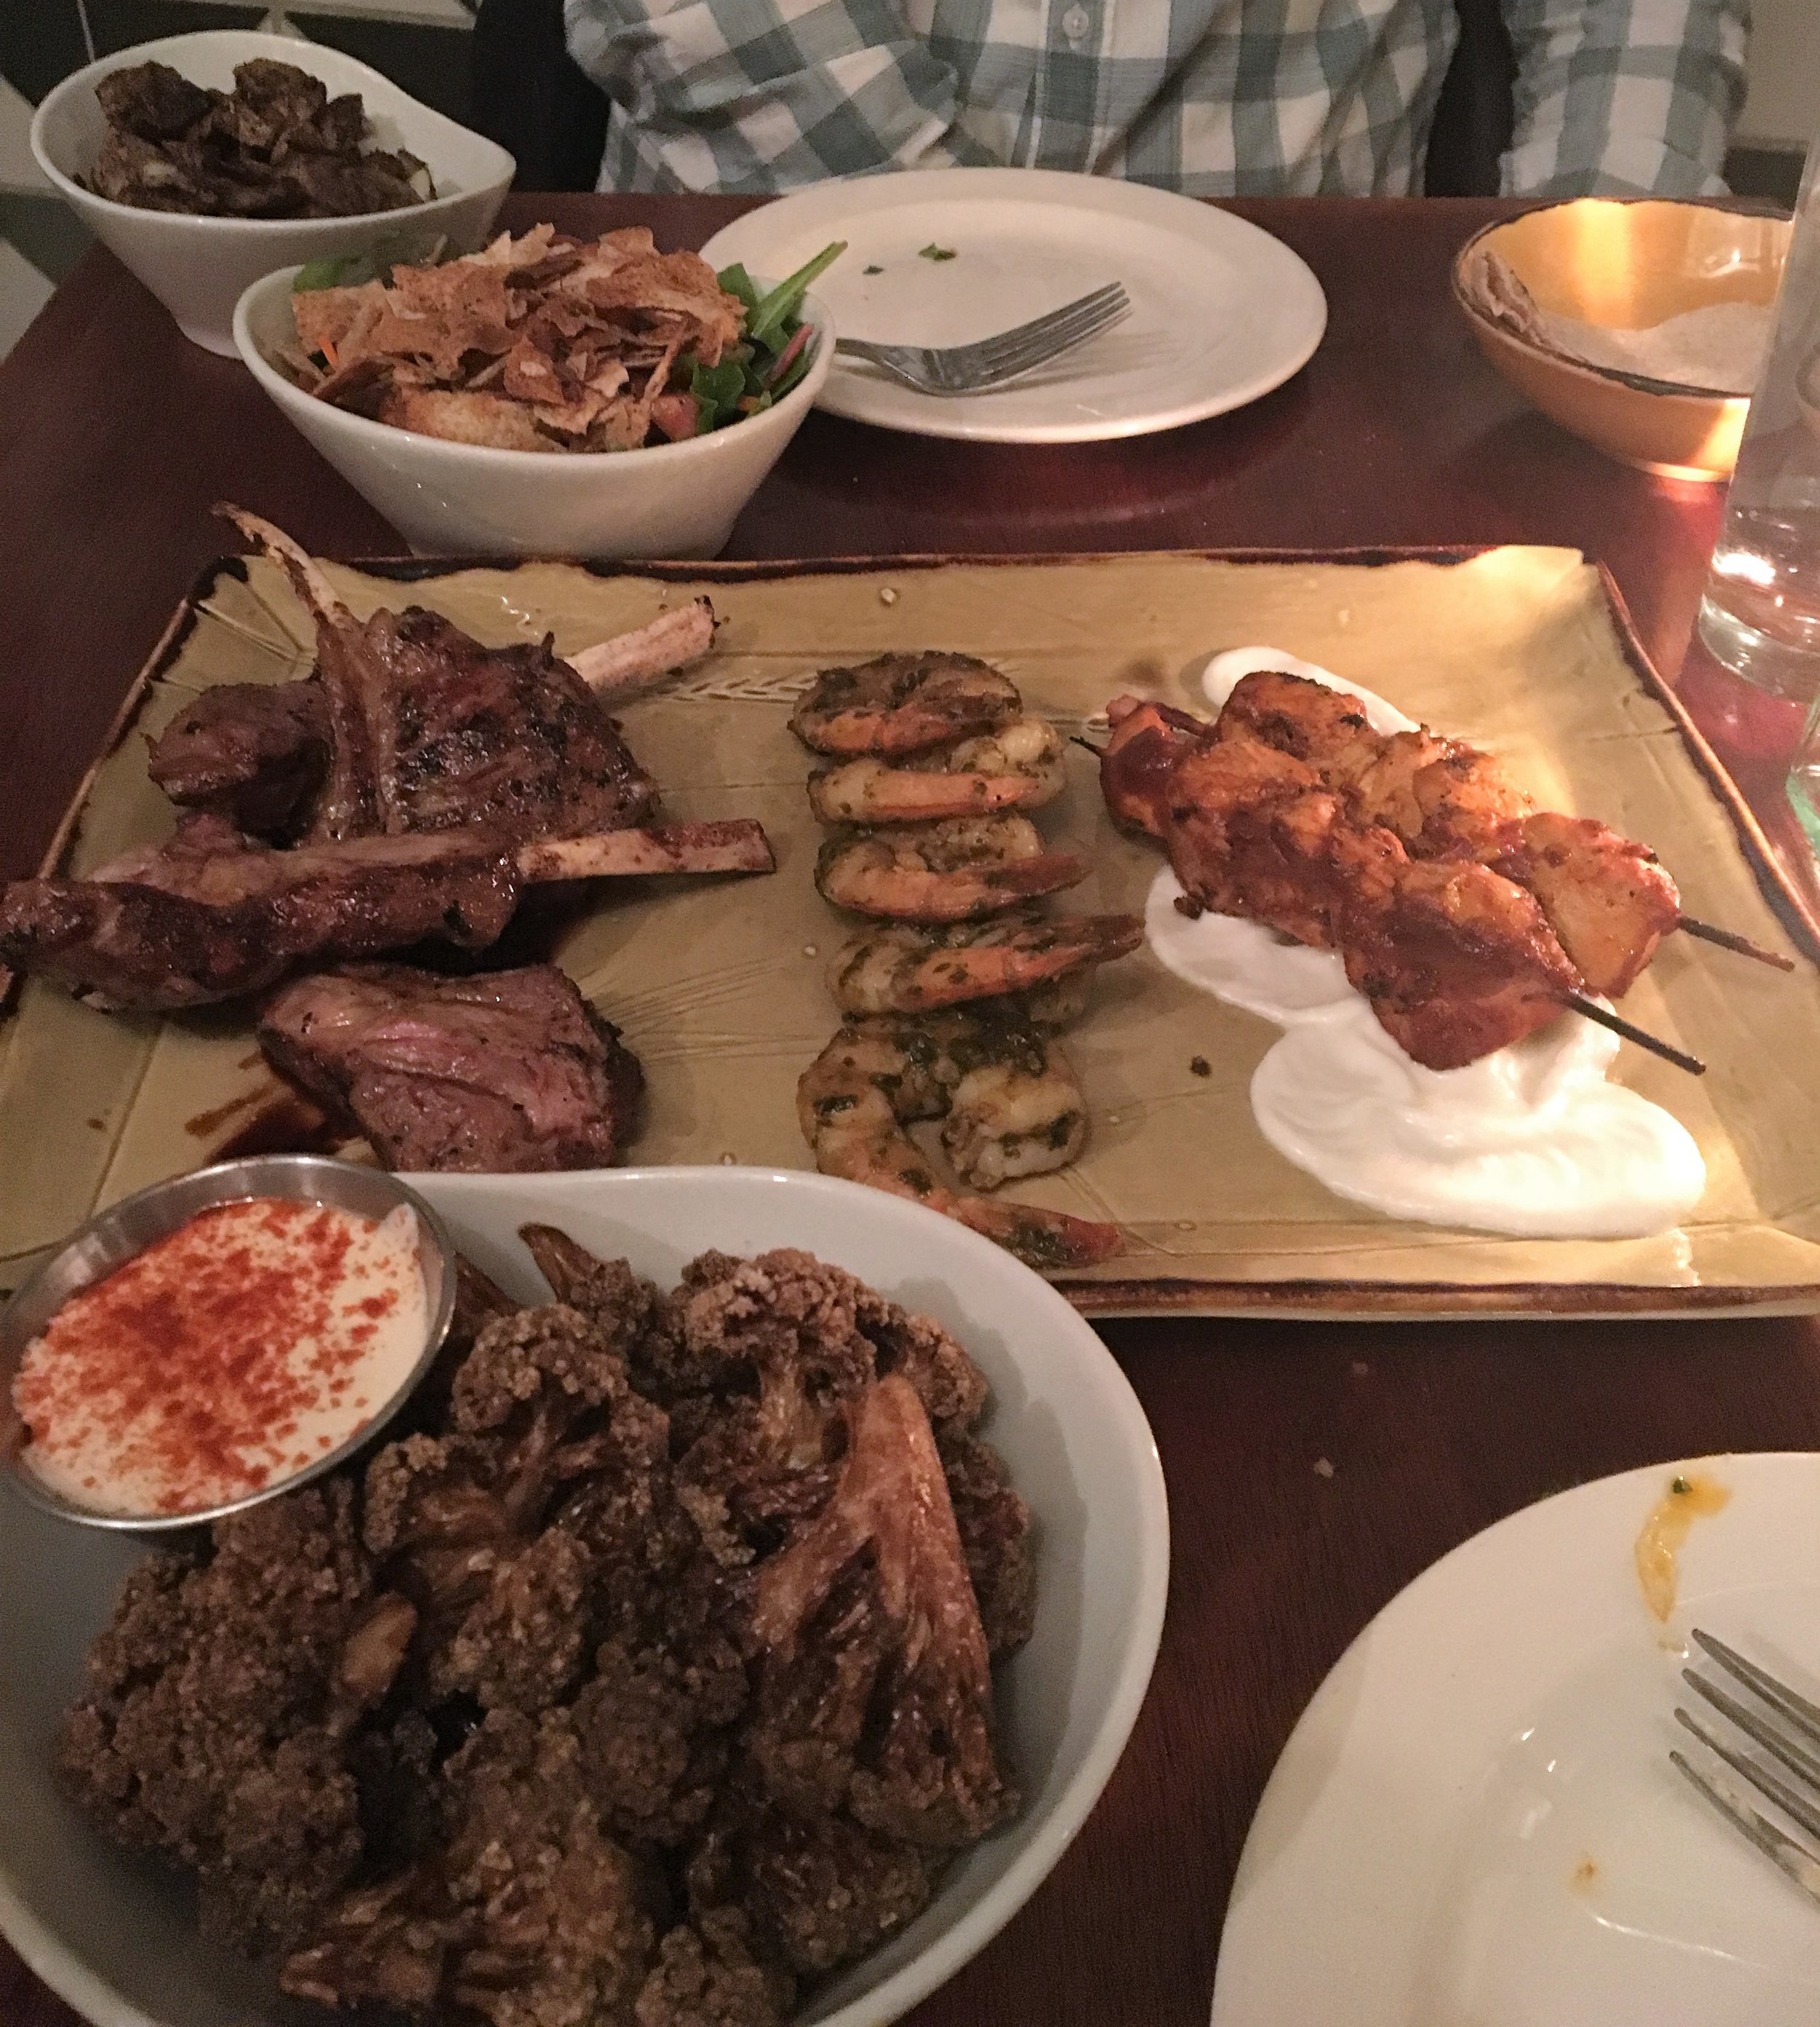 We ordered Le Grand Feast so that we could try a little (or a lot) of everything!